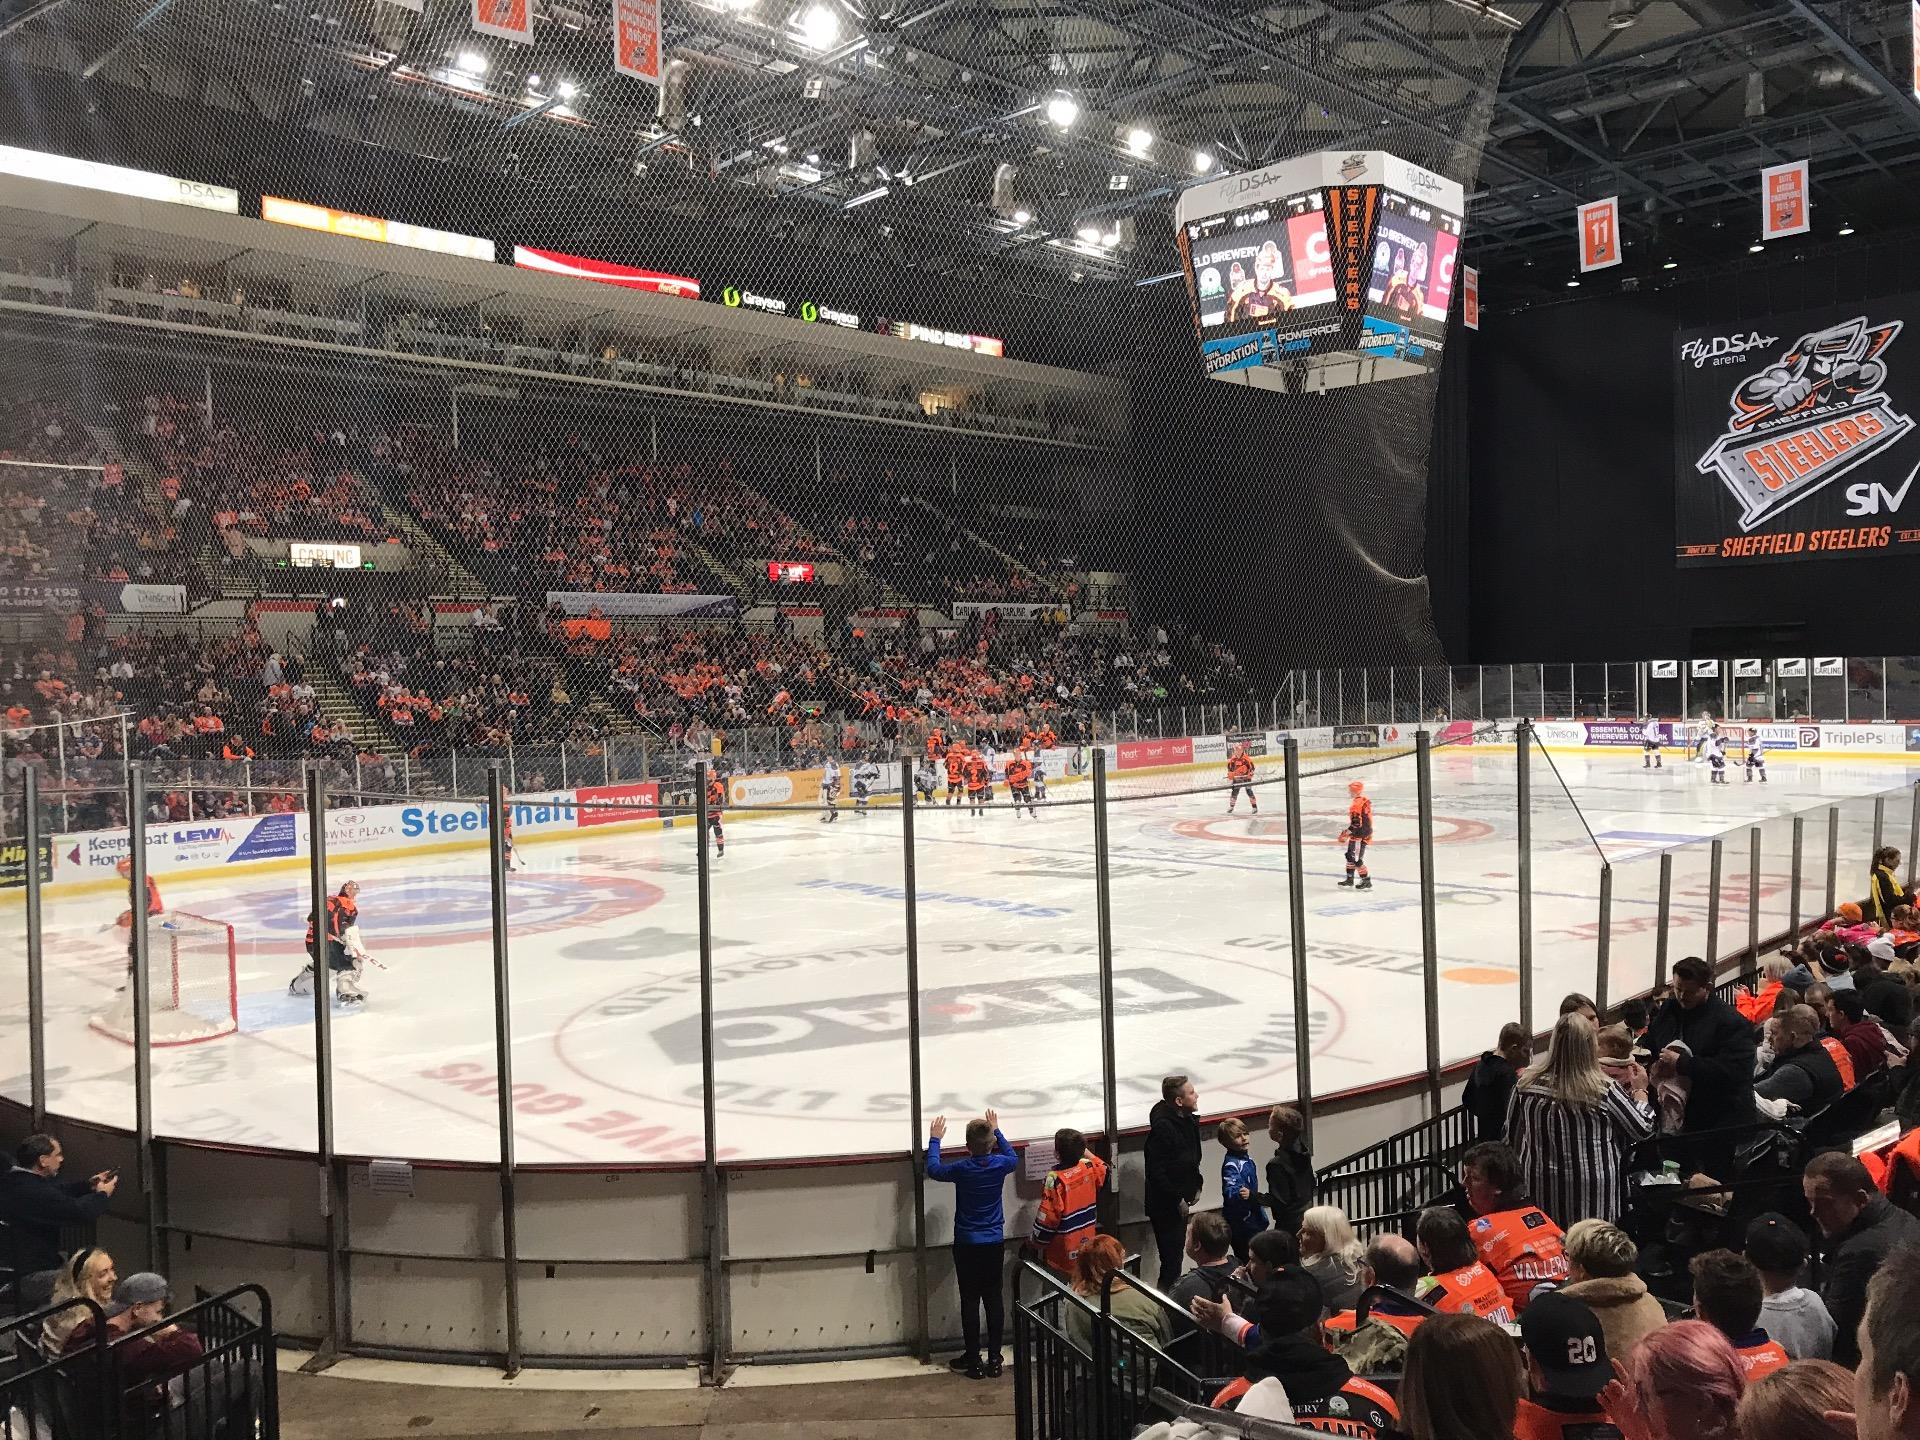 Sheffield Arena Section 114 Row K Seat 1